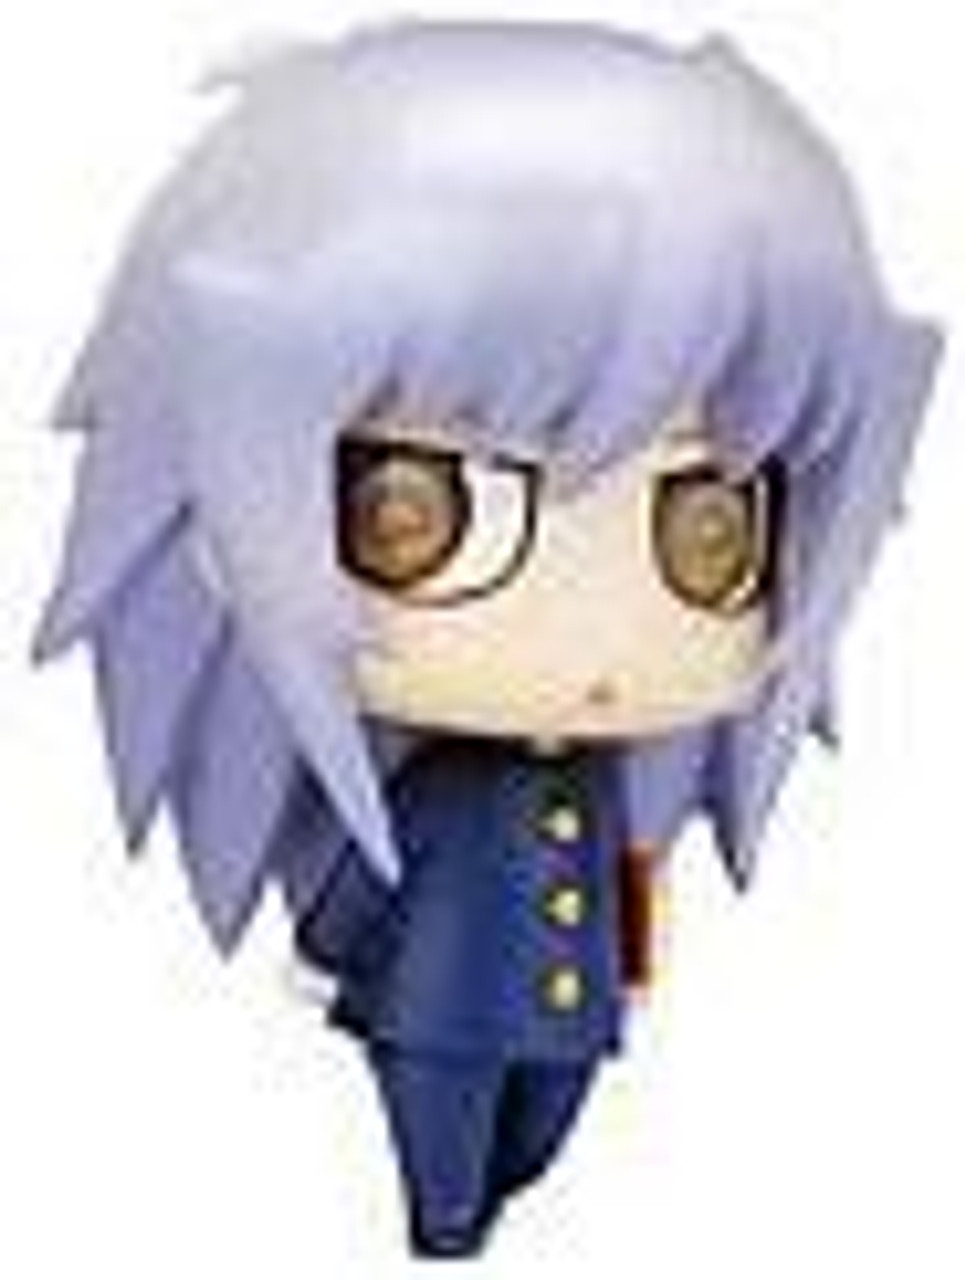 YuGiOh One Coin Series 1 Bakura Mini Figure